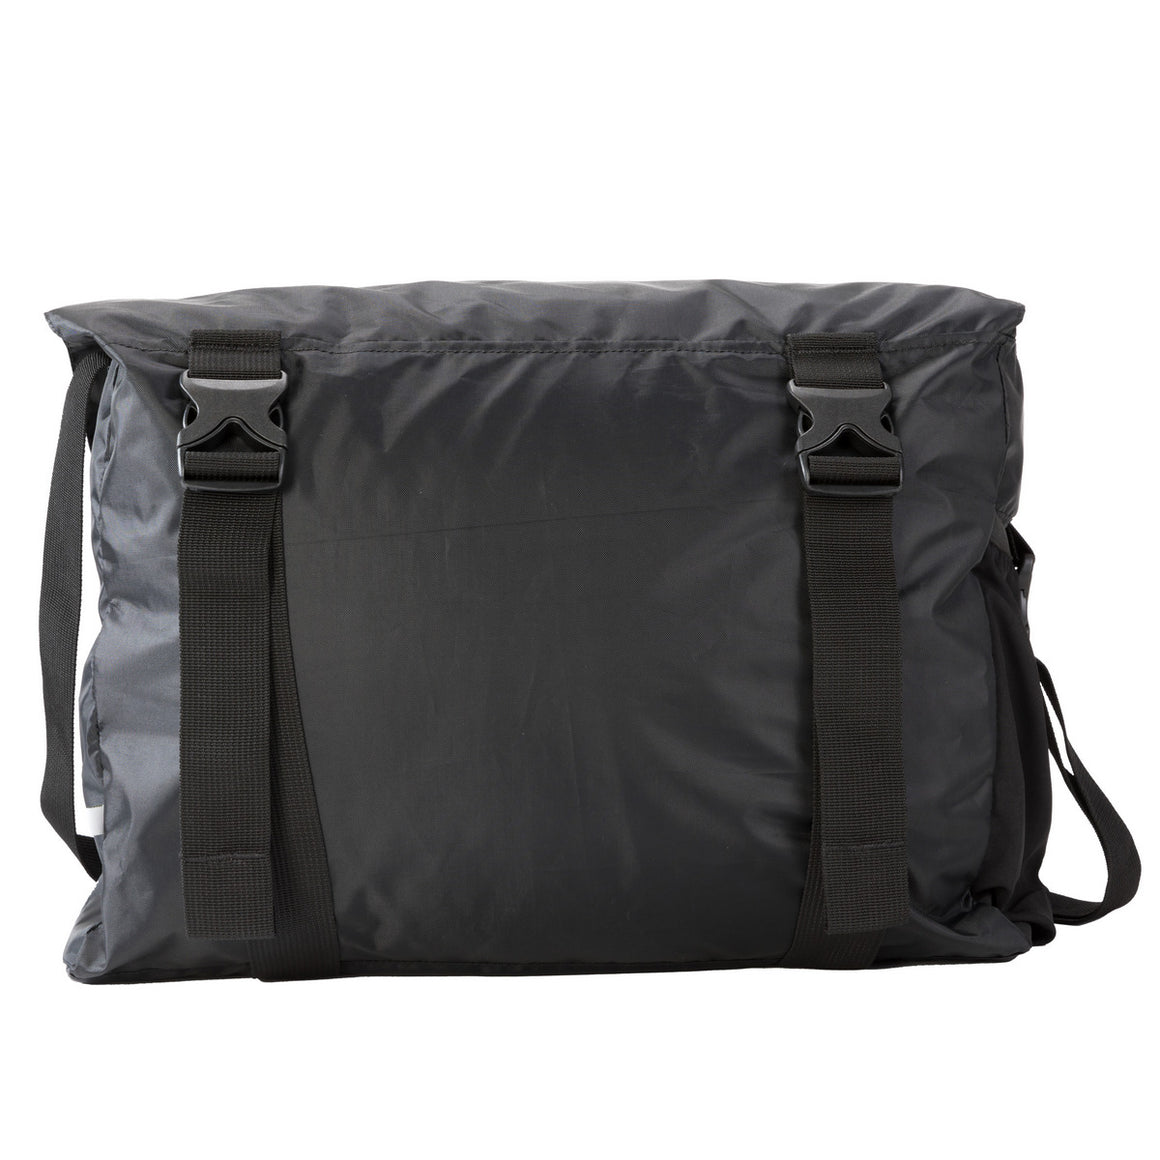 CozyBag ShoulderBag Big